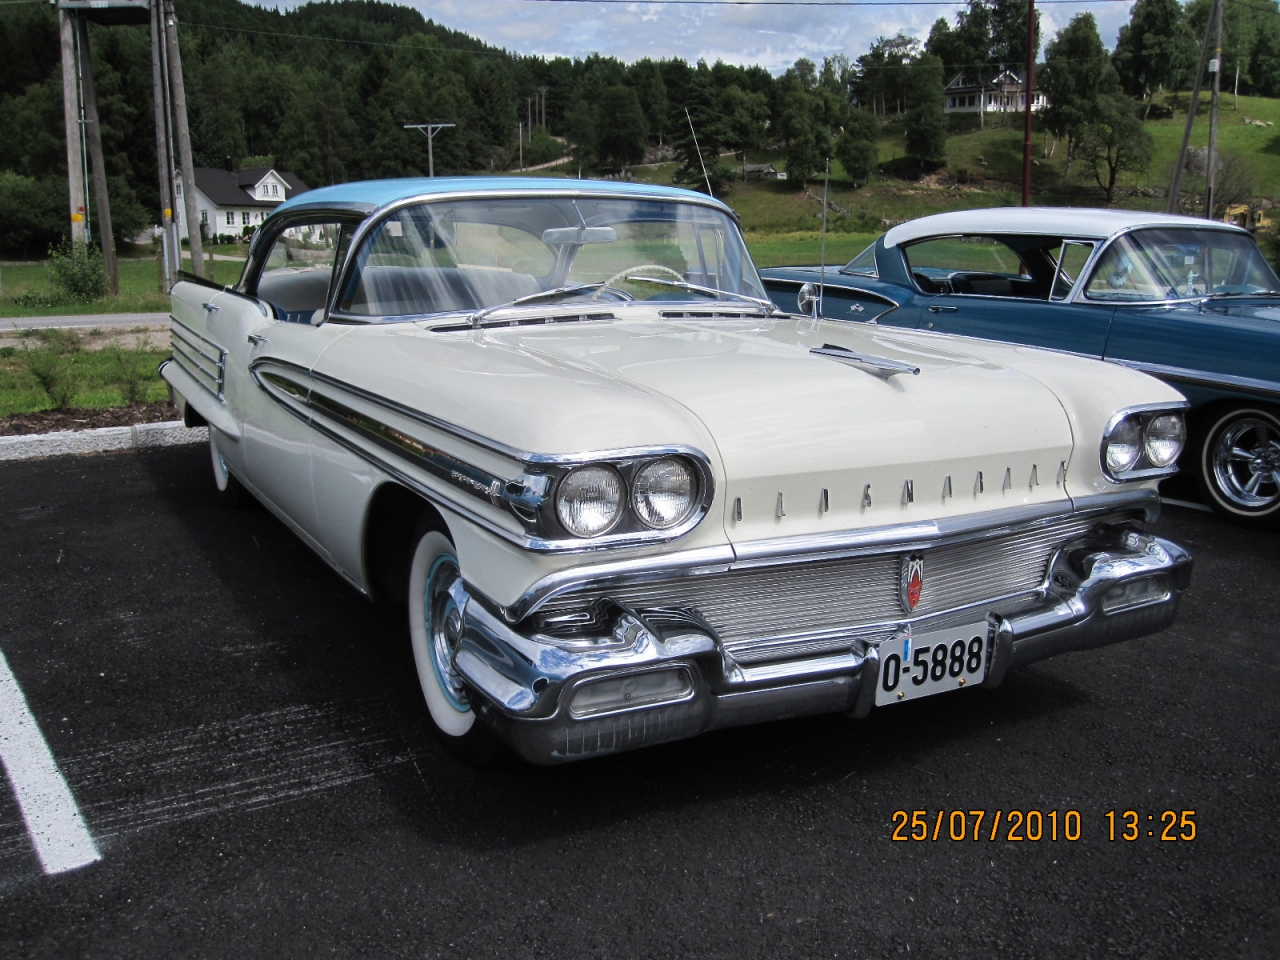 Kenneths_1958_Oldsmobile_Super_88_006